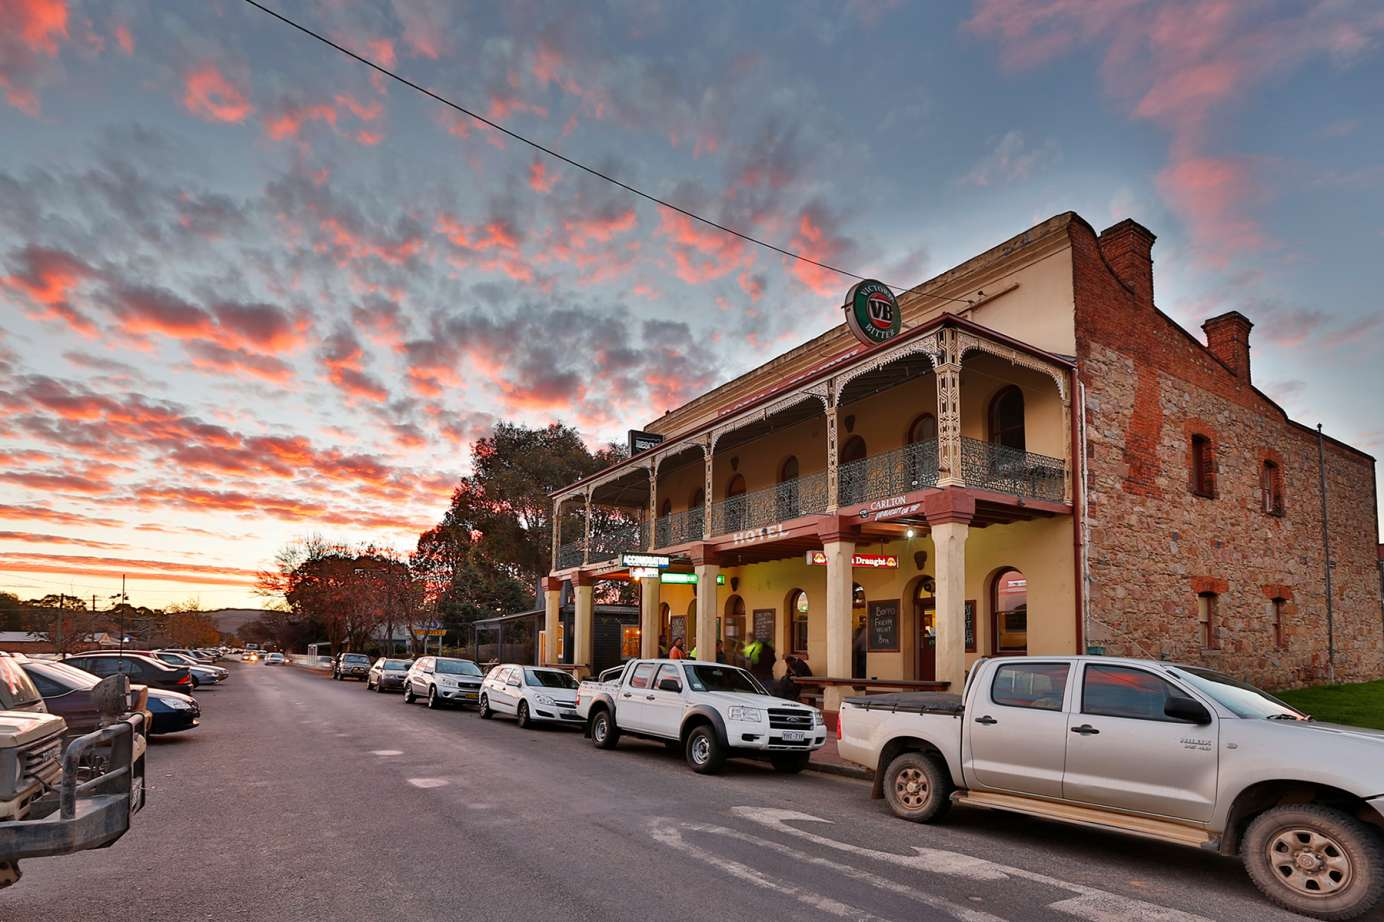 Township of Bungendore